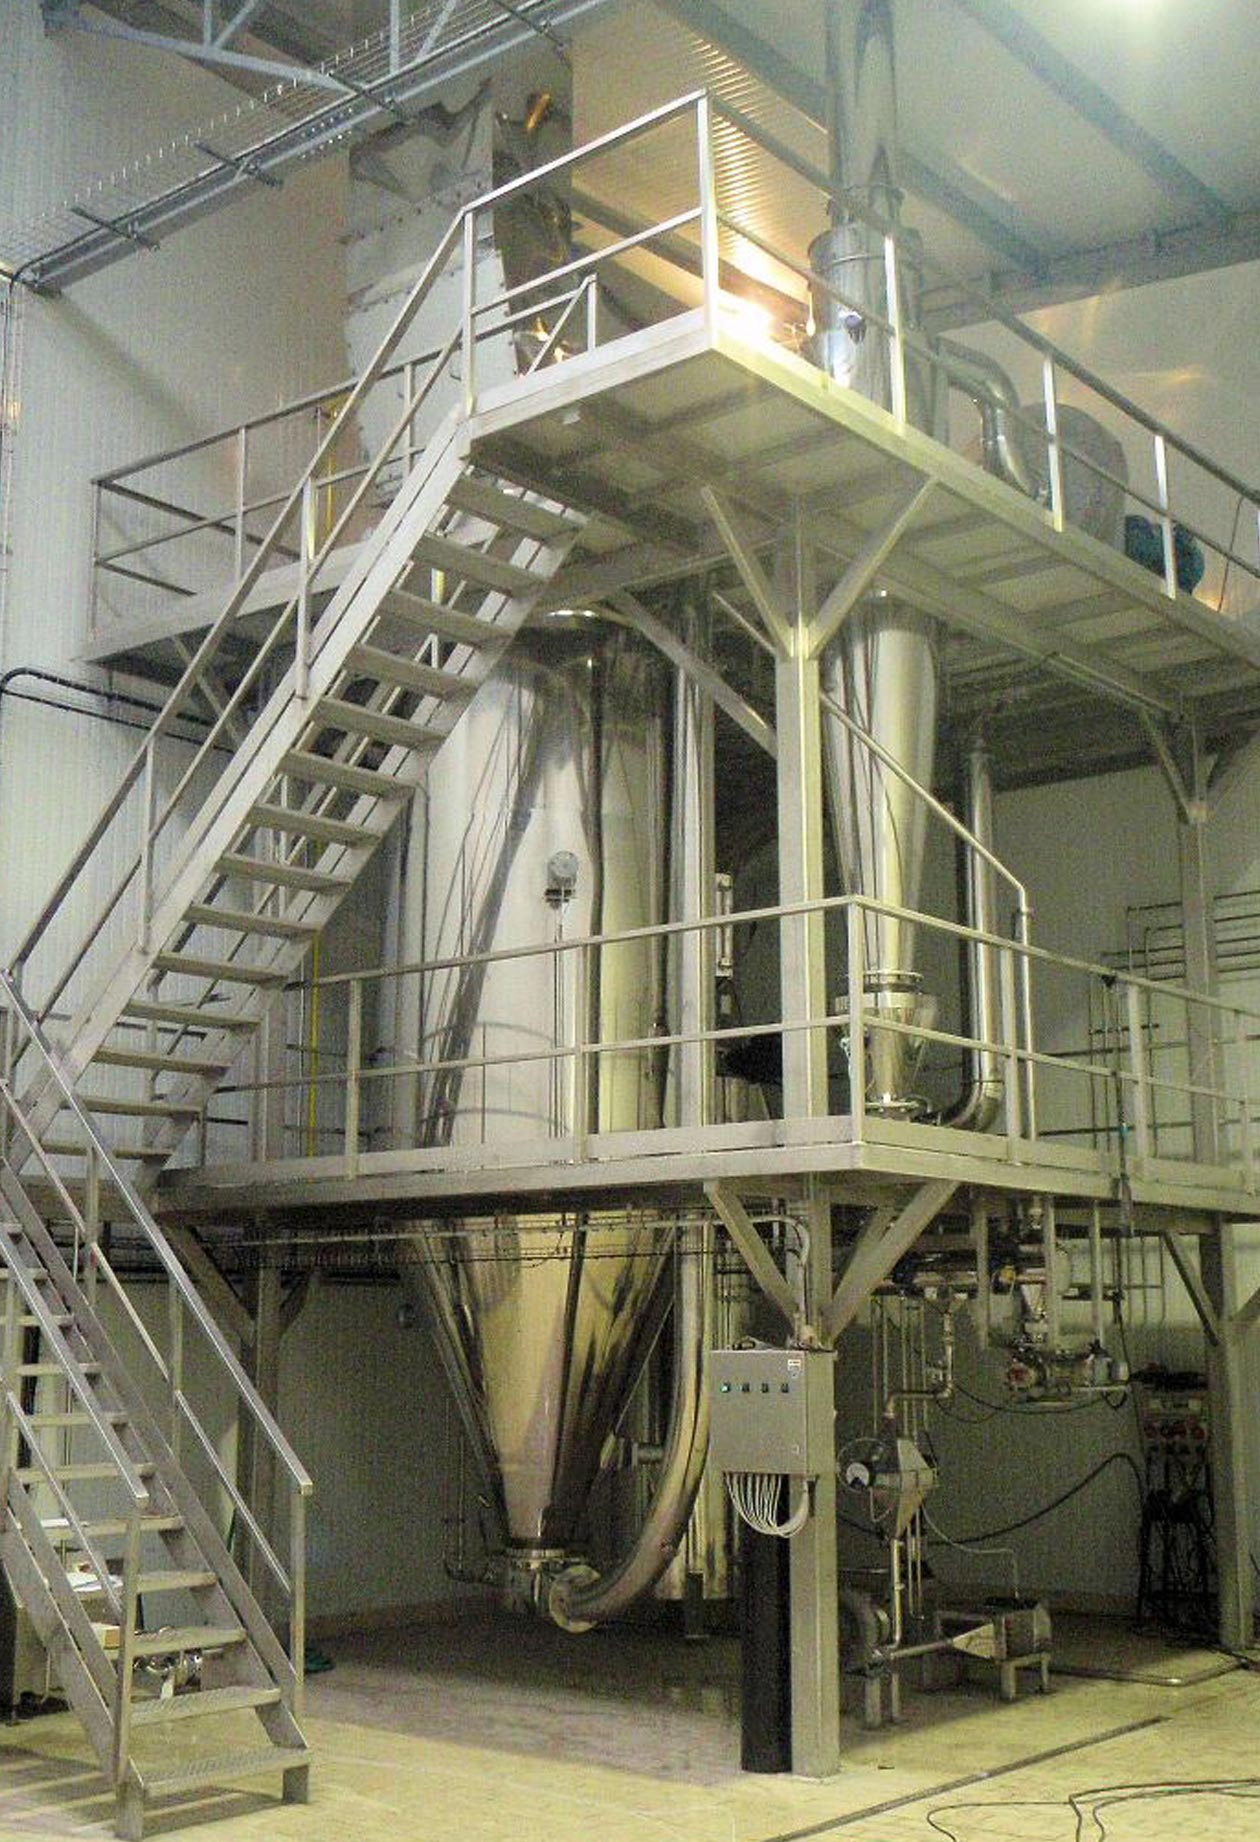 Production-scale spray dryers